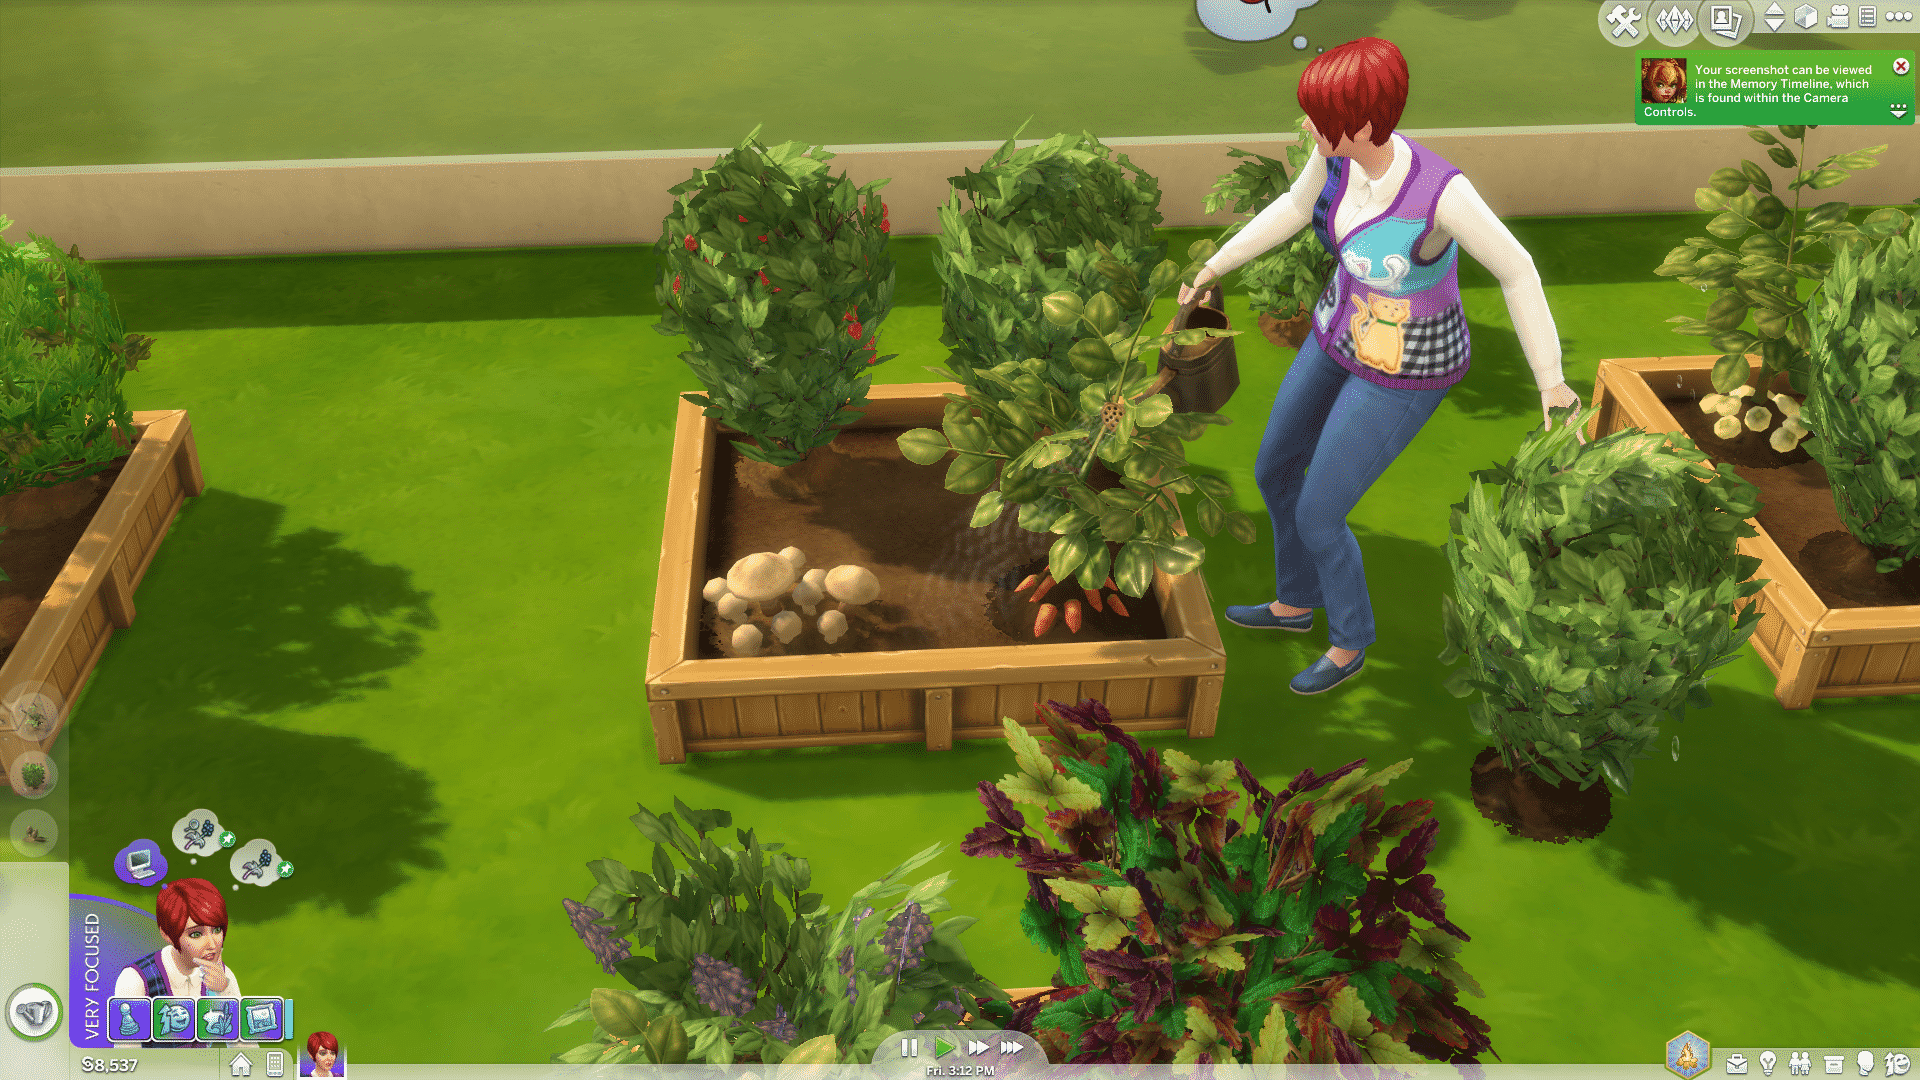 The Sims 4 Gardening Skill Guide